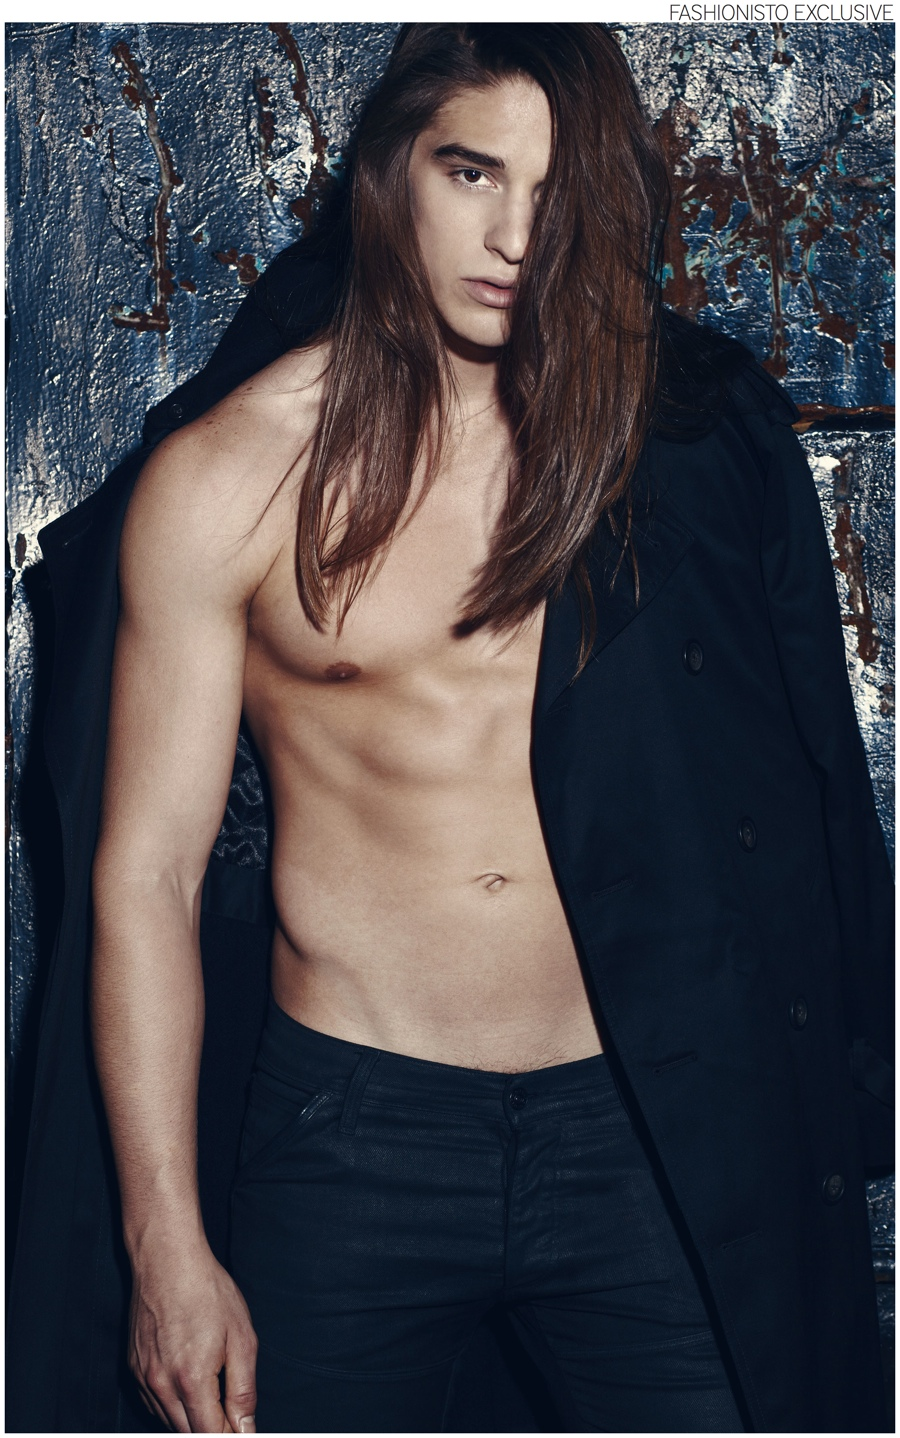 Fashionisto Exclusive Paul Corona Joseph Garrison By